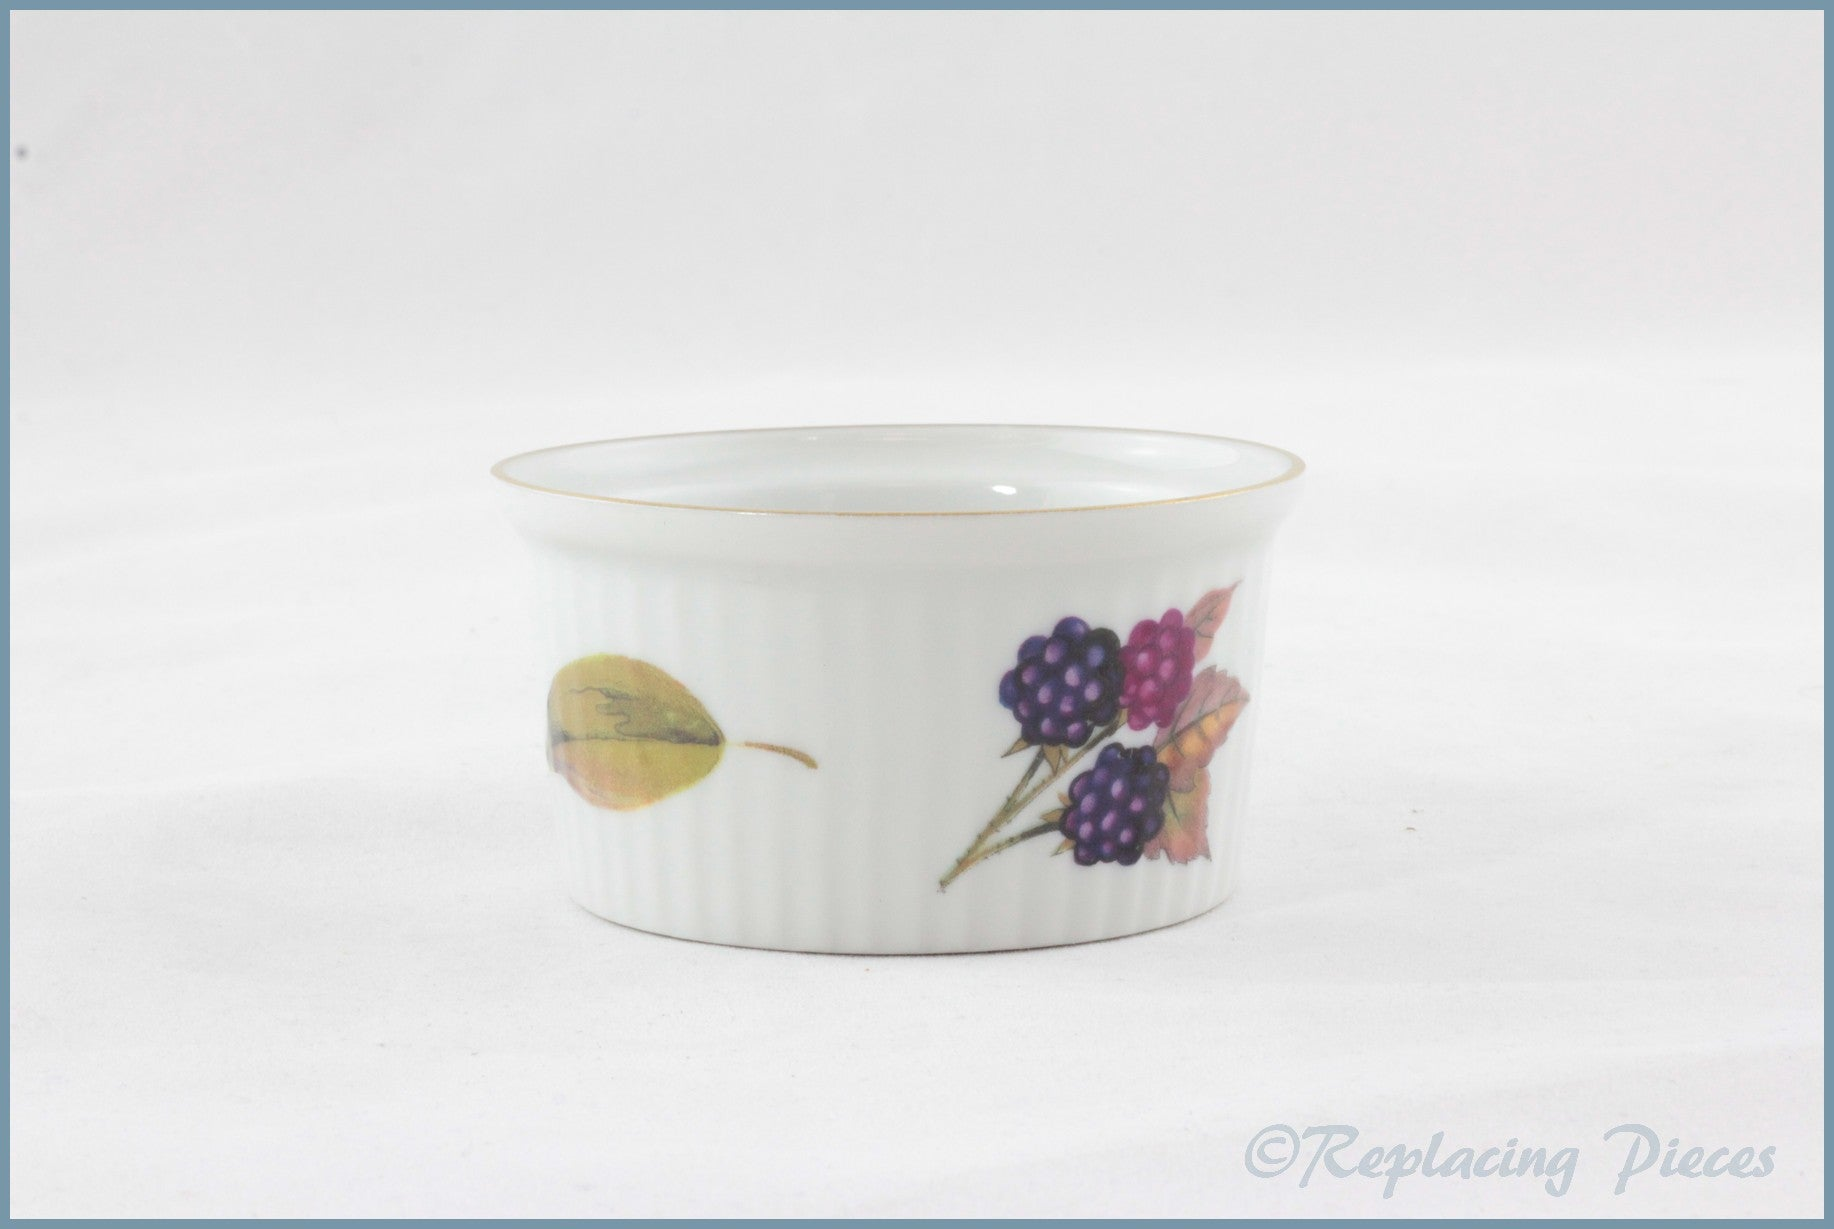 Ramekin (Gold On Top - No Olive)